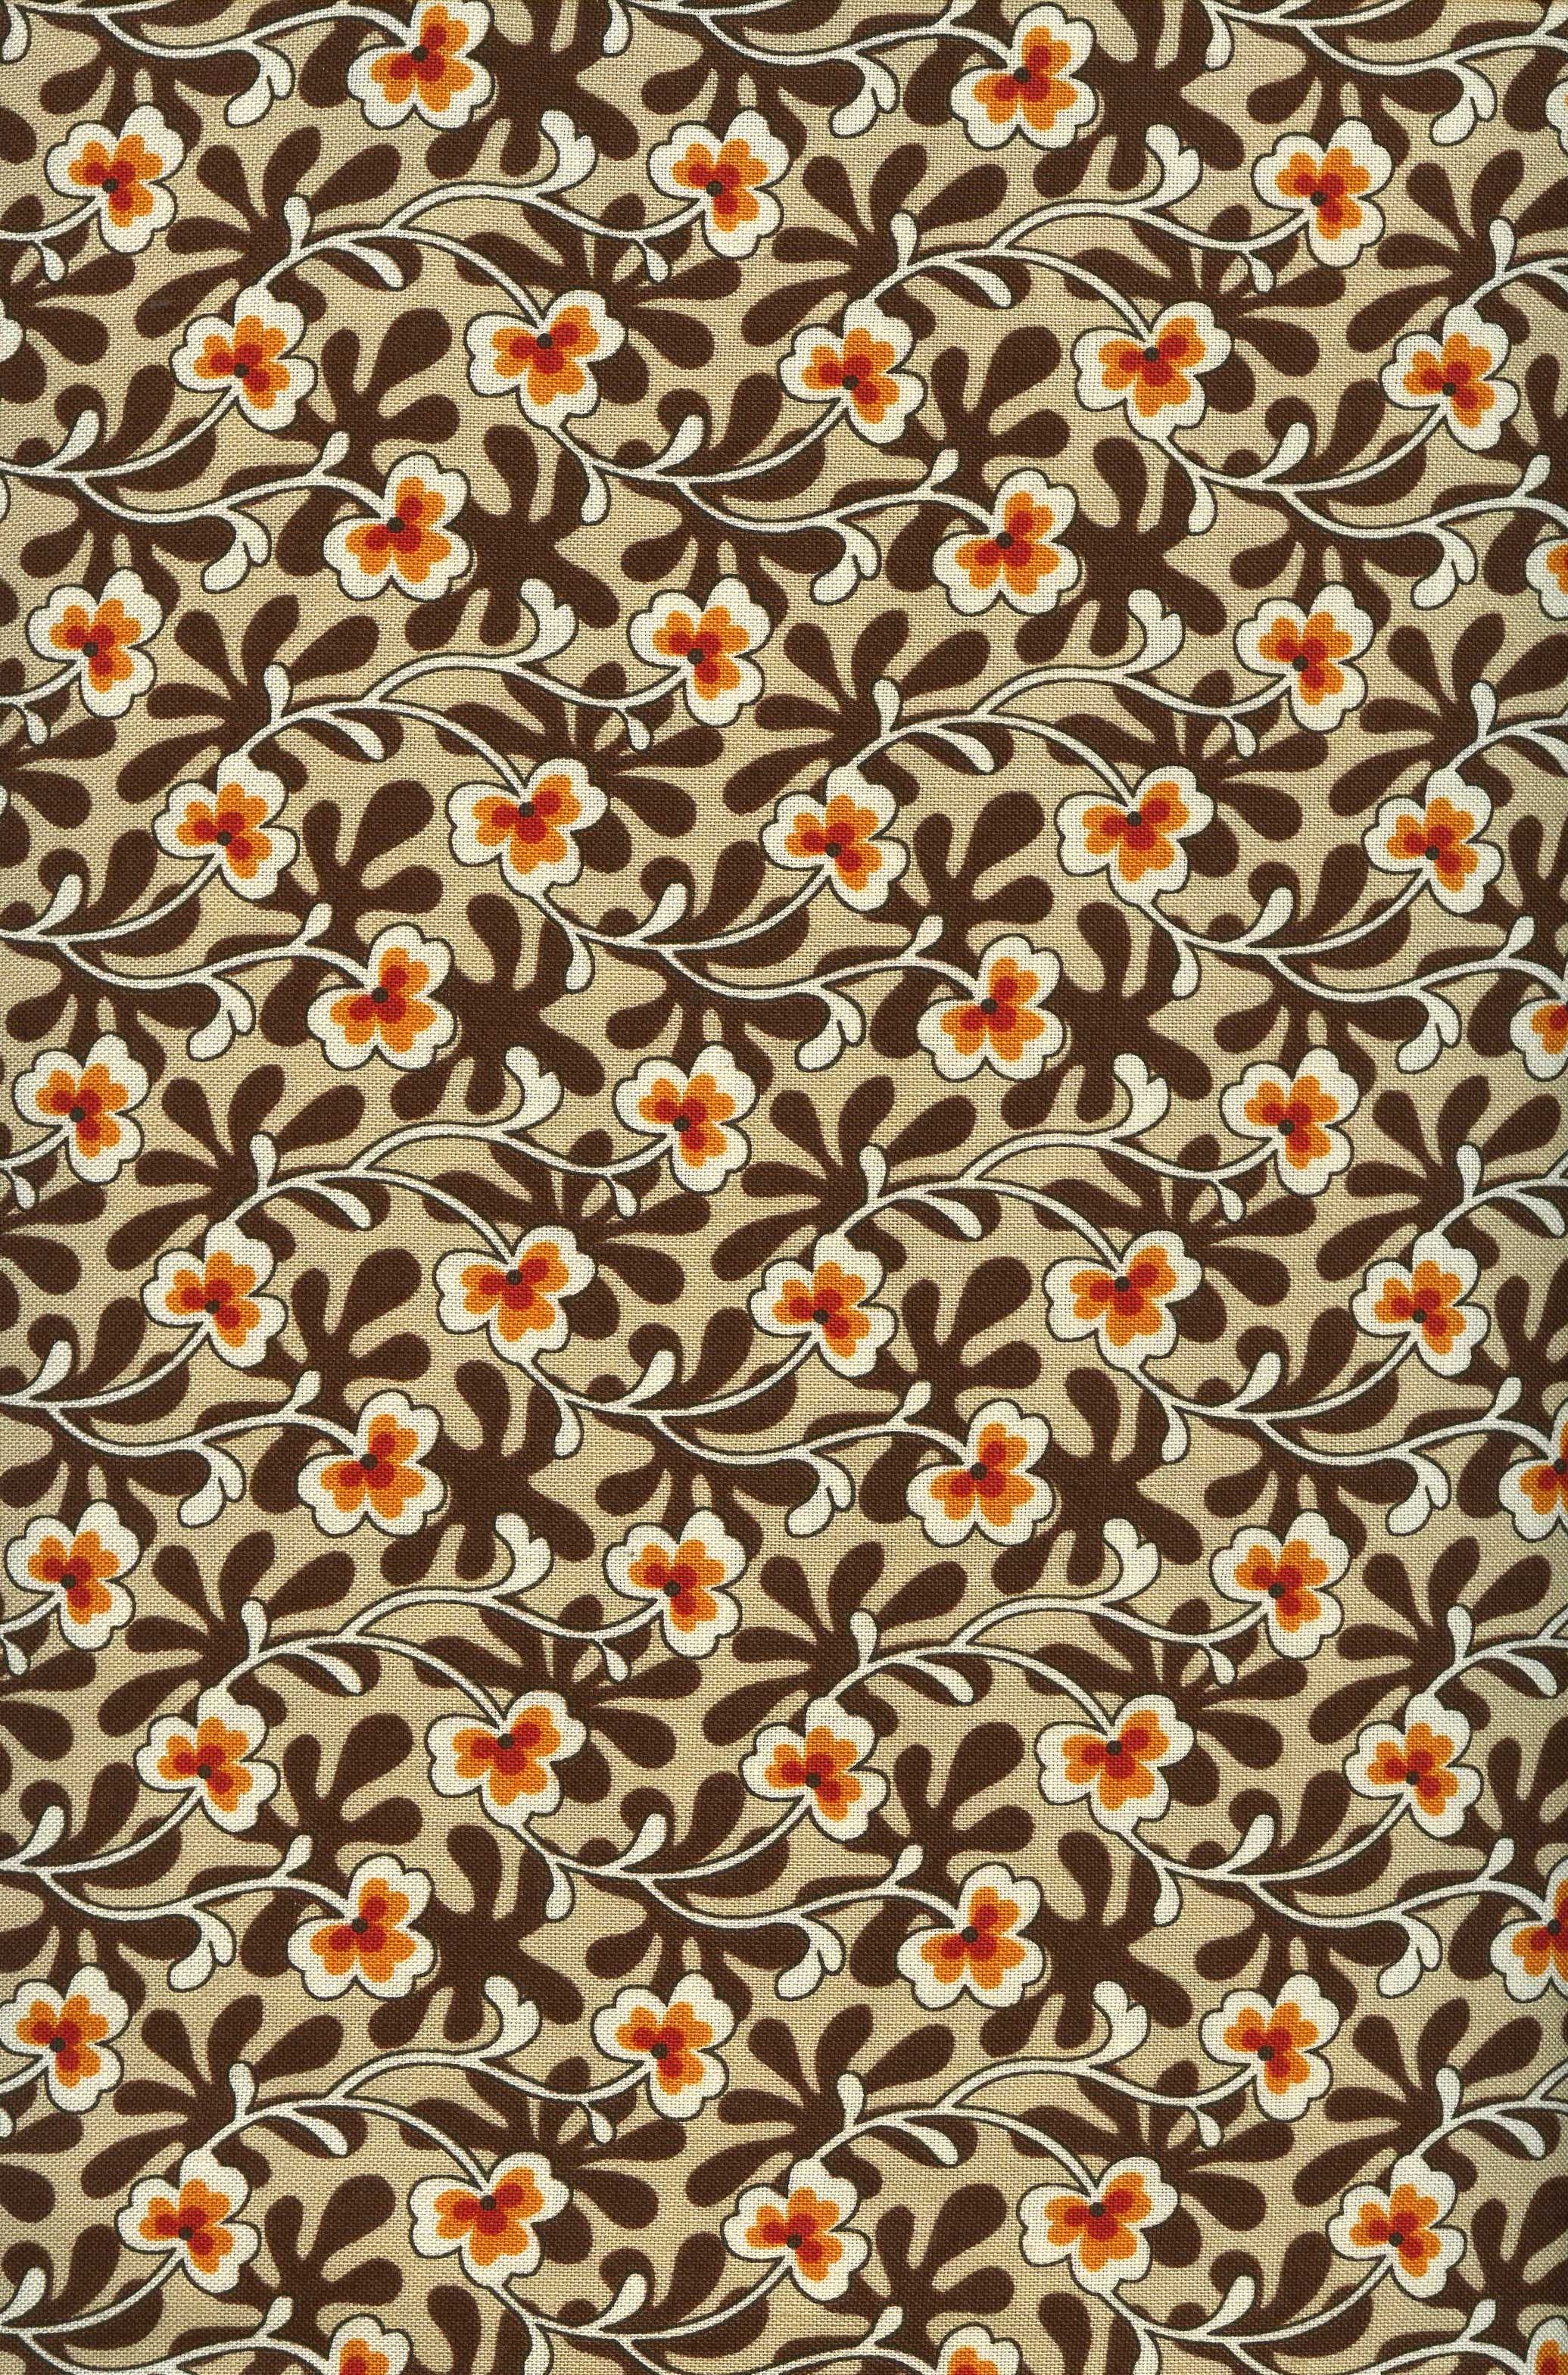 Shelburne Calico Gardens-Tan and Brown with Orange Flowers